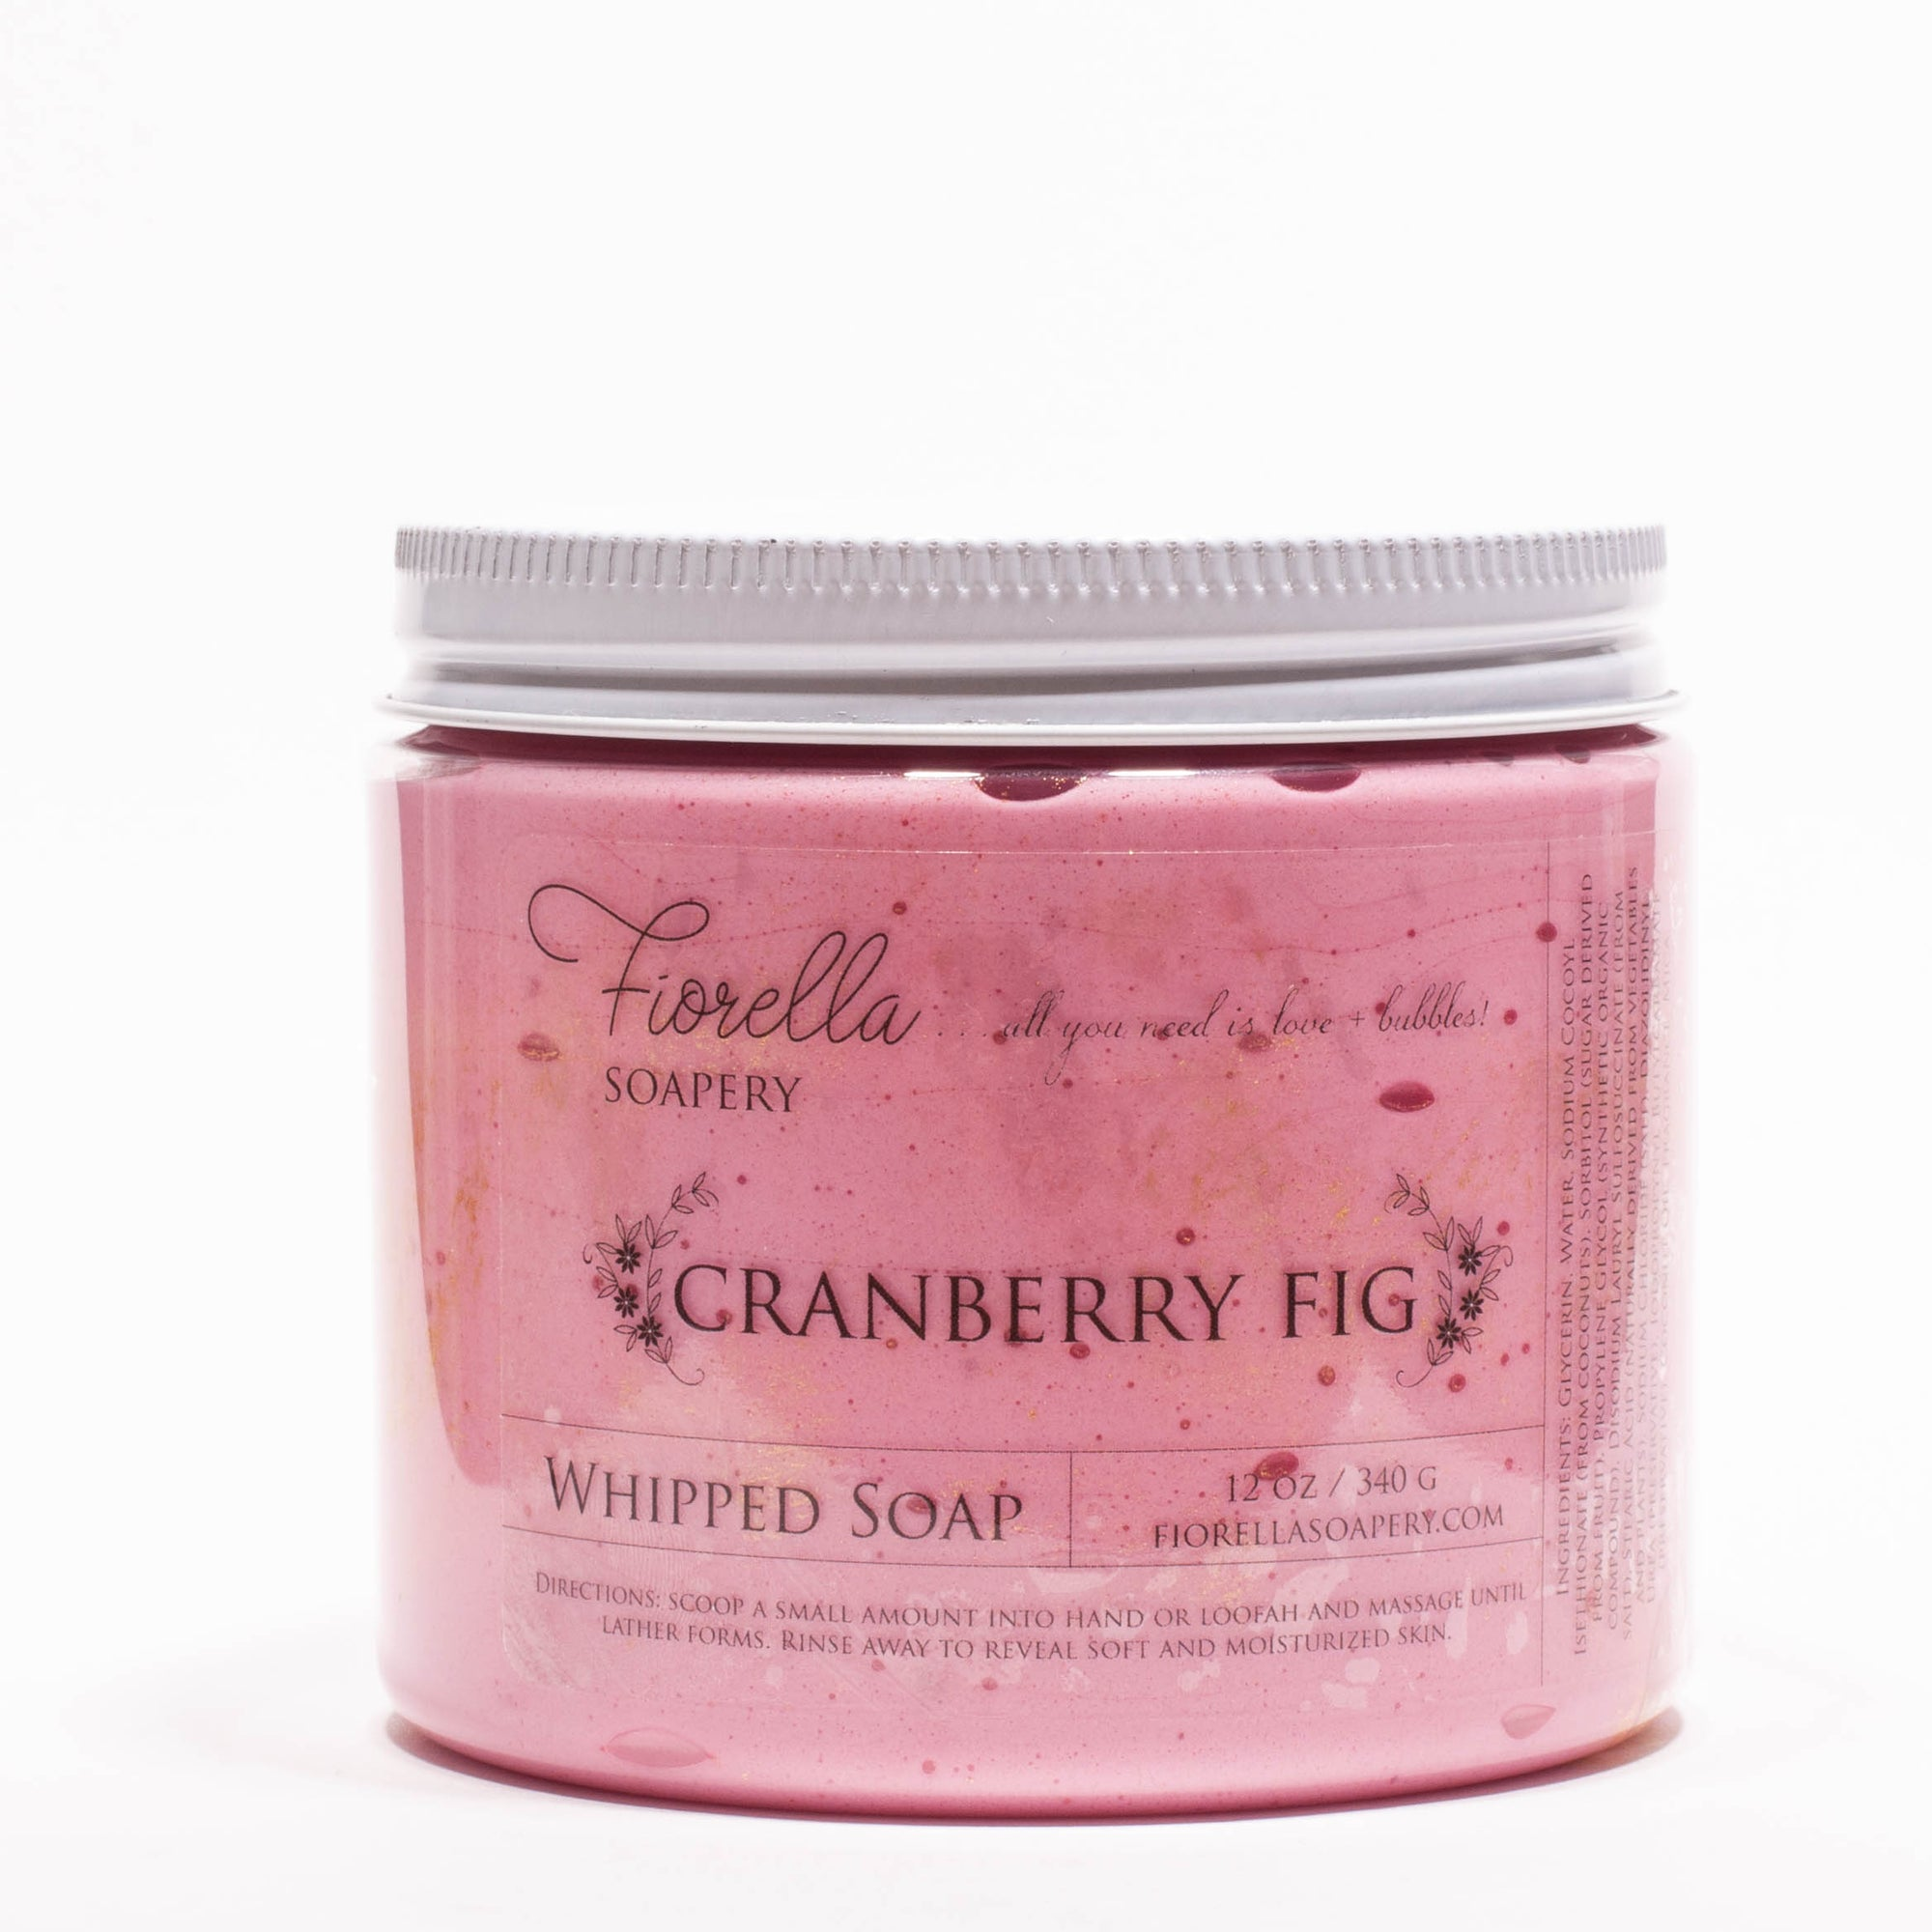 Cranberry Fig Whipped Soap